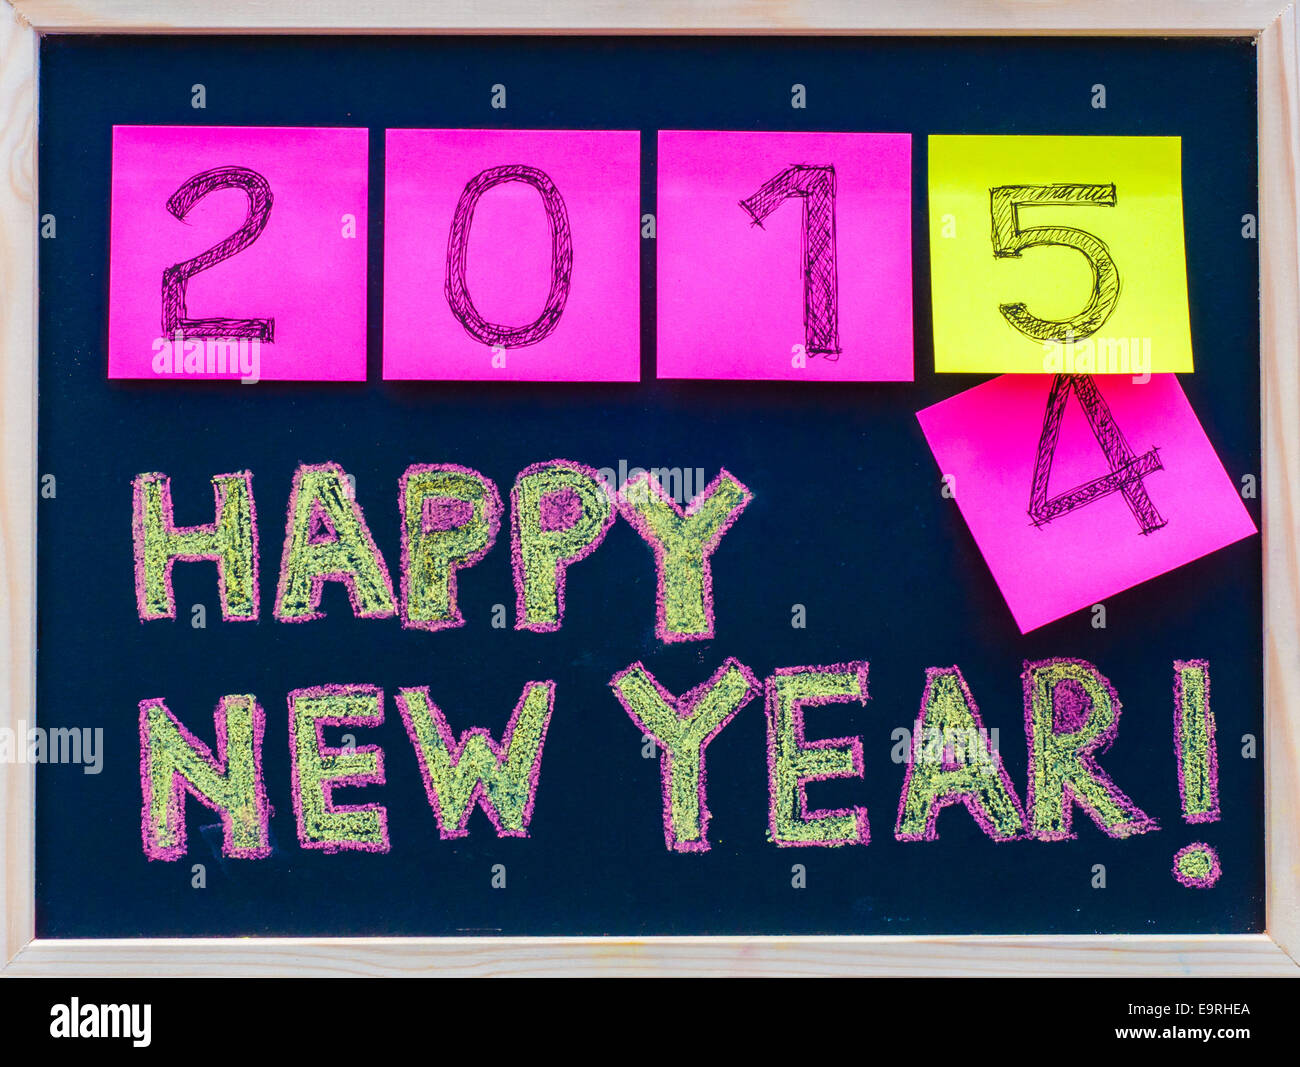 Happy New Year 2015 message hand written on blackboard, numbers stated on post-it notes, 2015 replacing 2014 - Stock Image